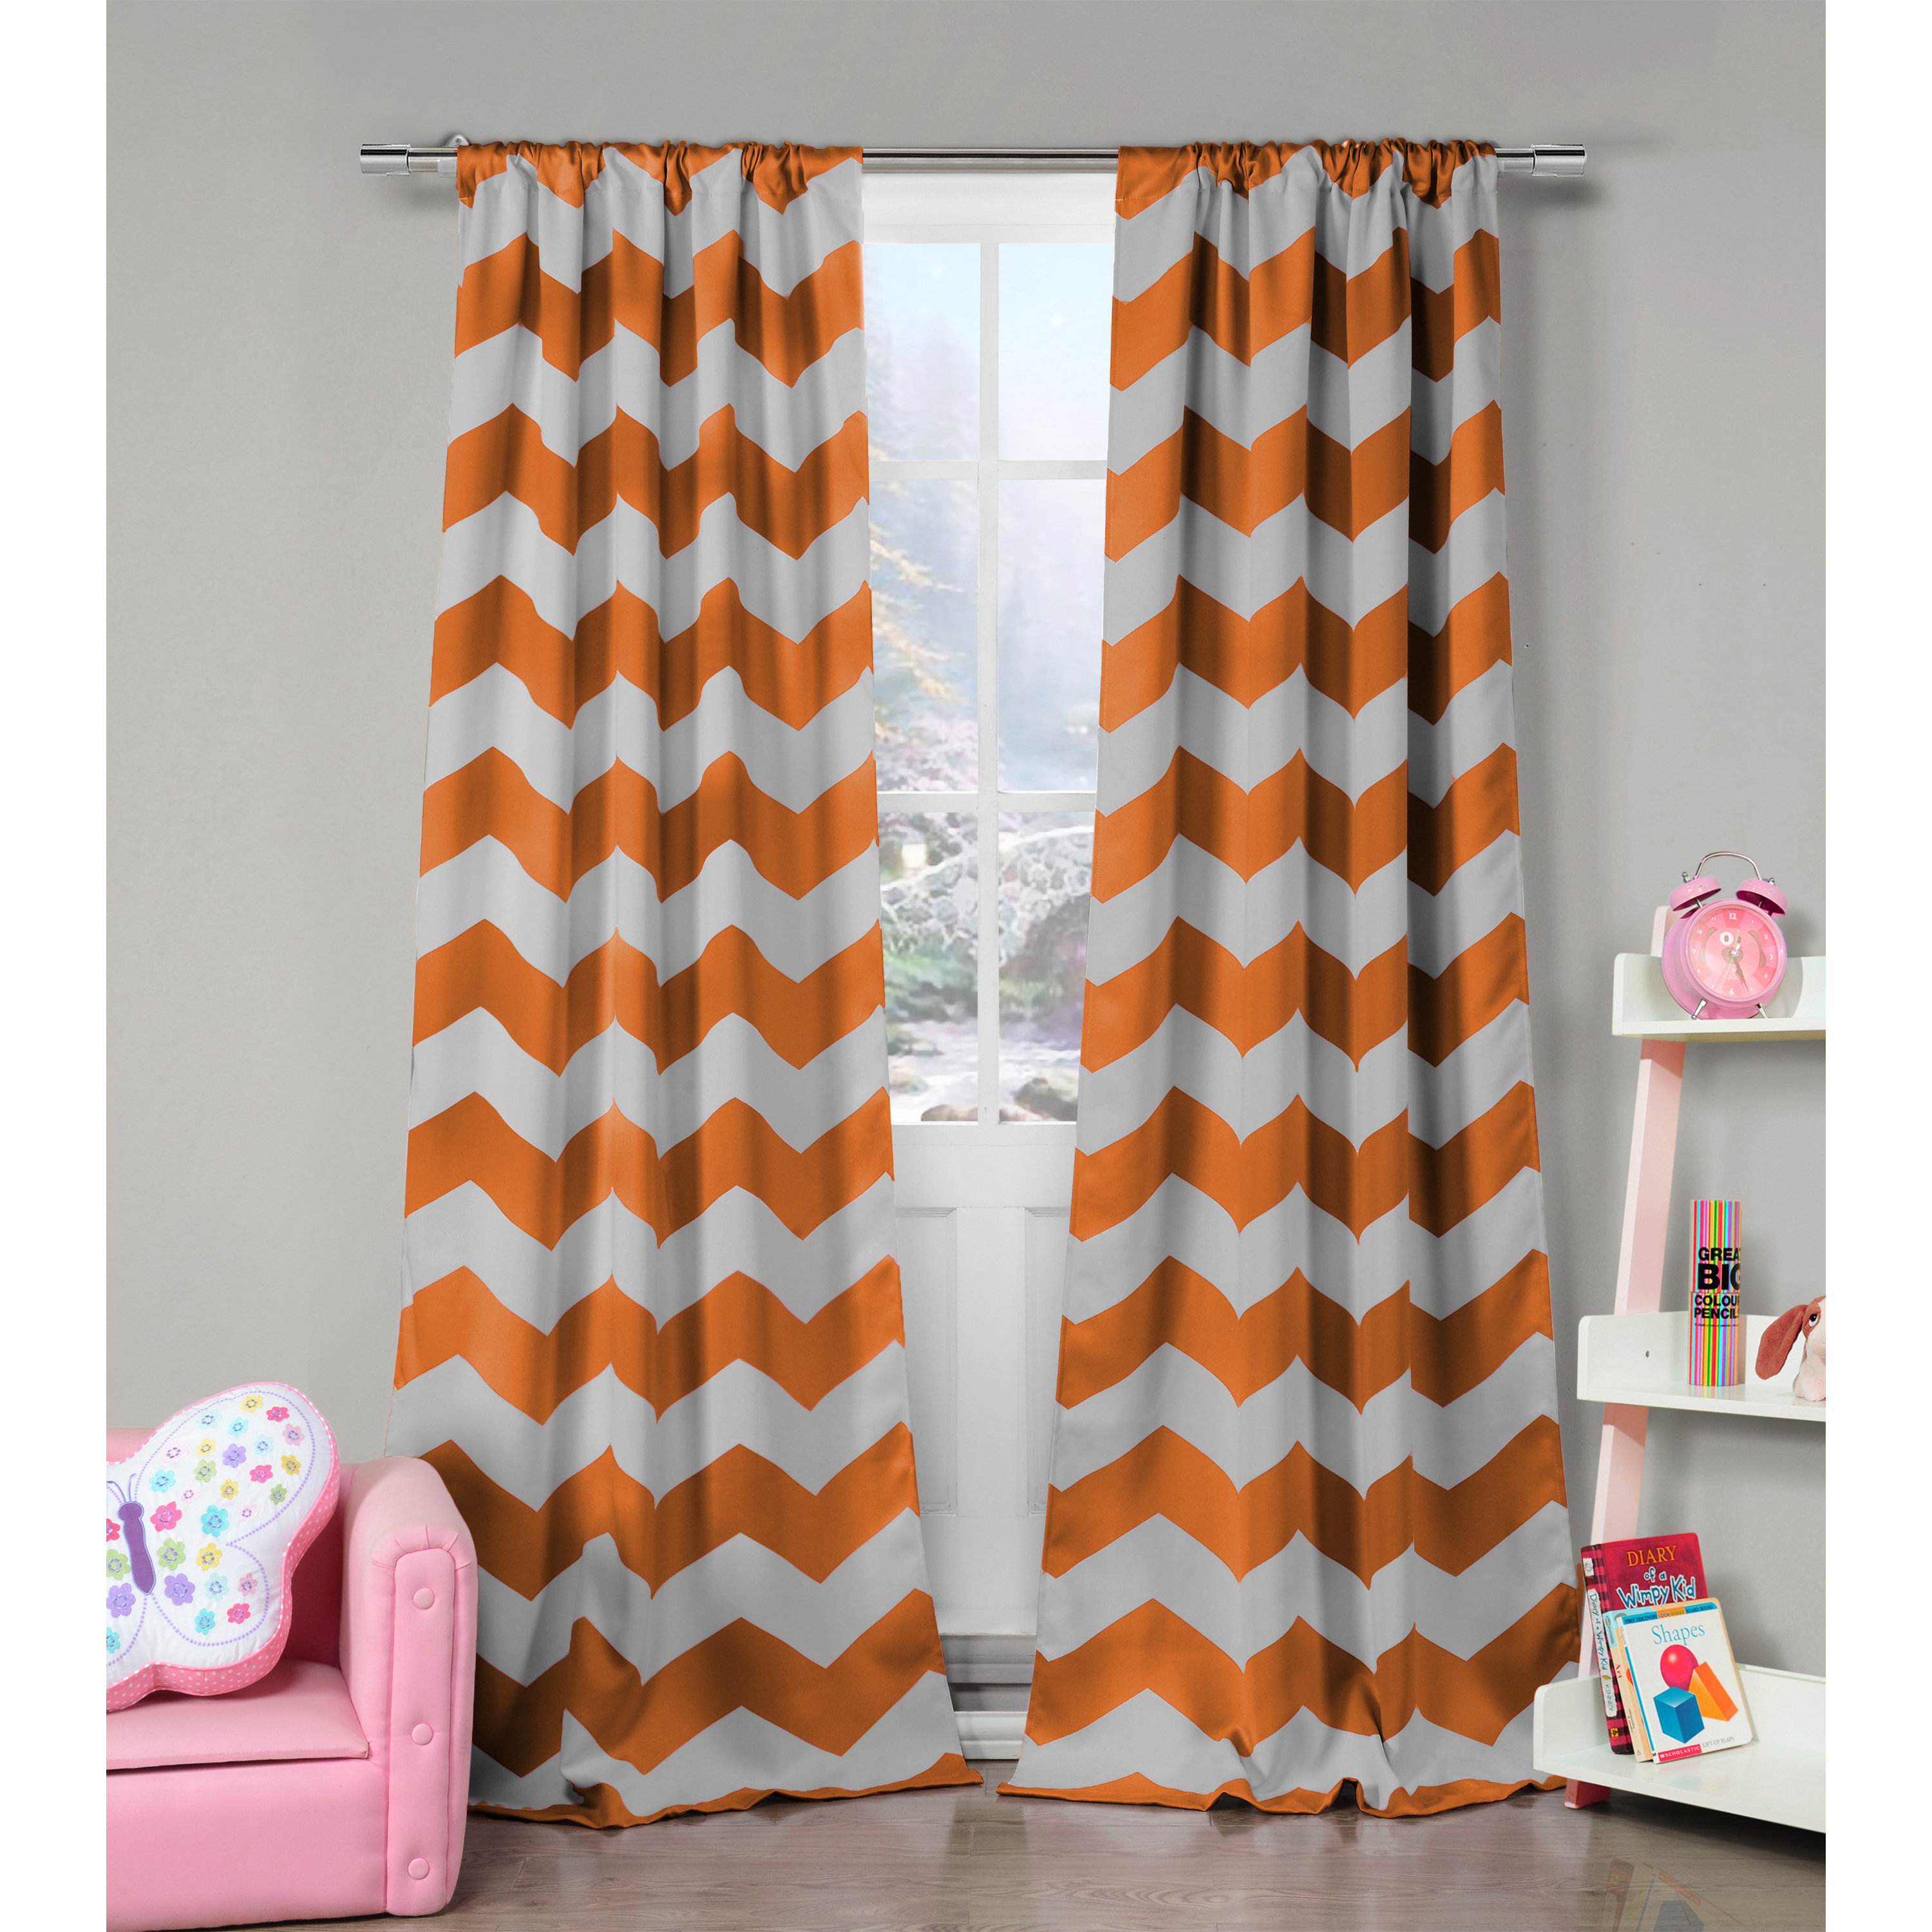 covering rounded also rods orange curtains eyelet living under luxury ora curtain hang and sofa chaise black semi window crystal on majestic decors in leather chandelier treatment set snazzy inspiration panels room table lounge cool